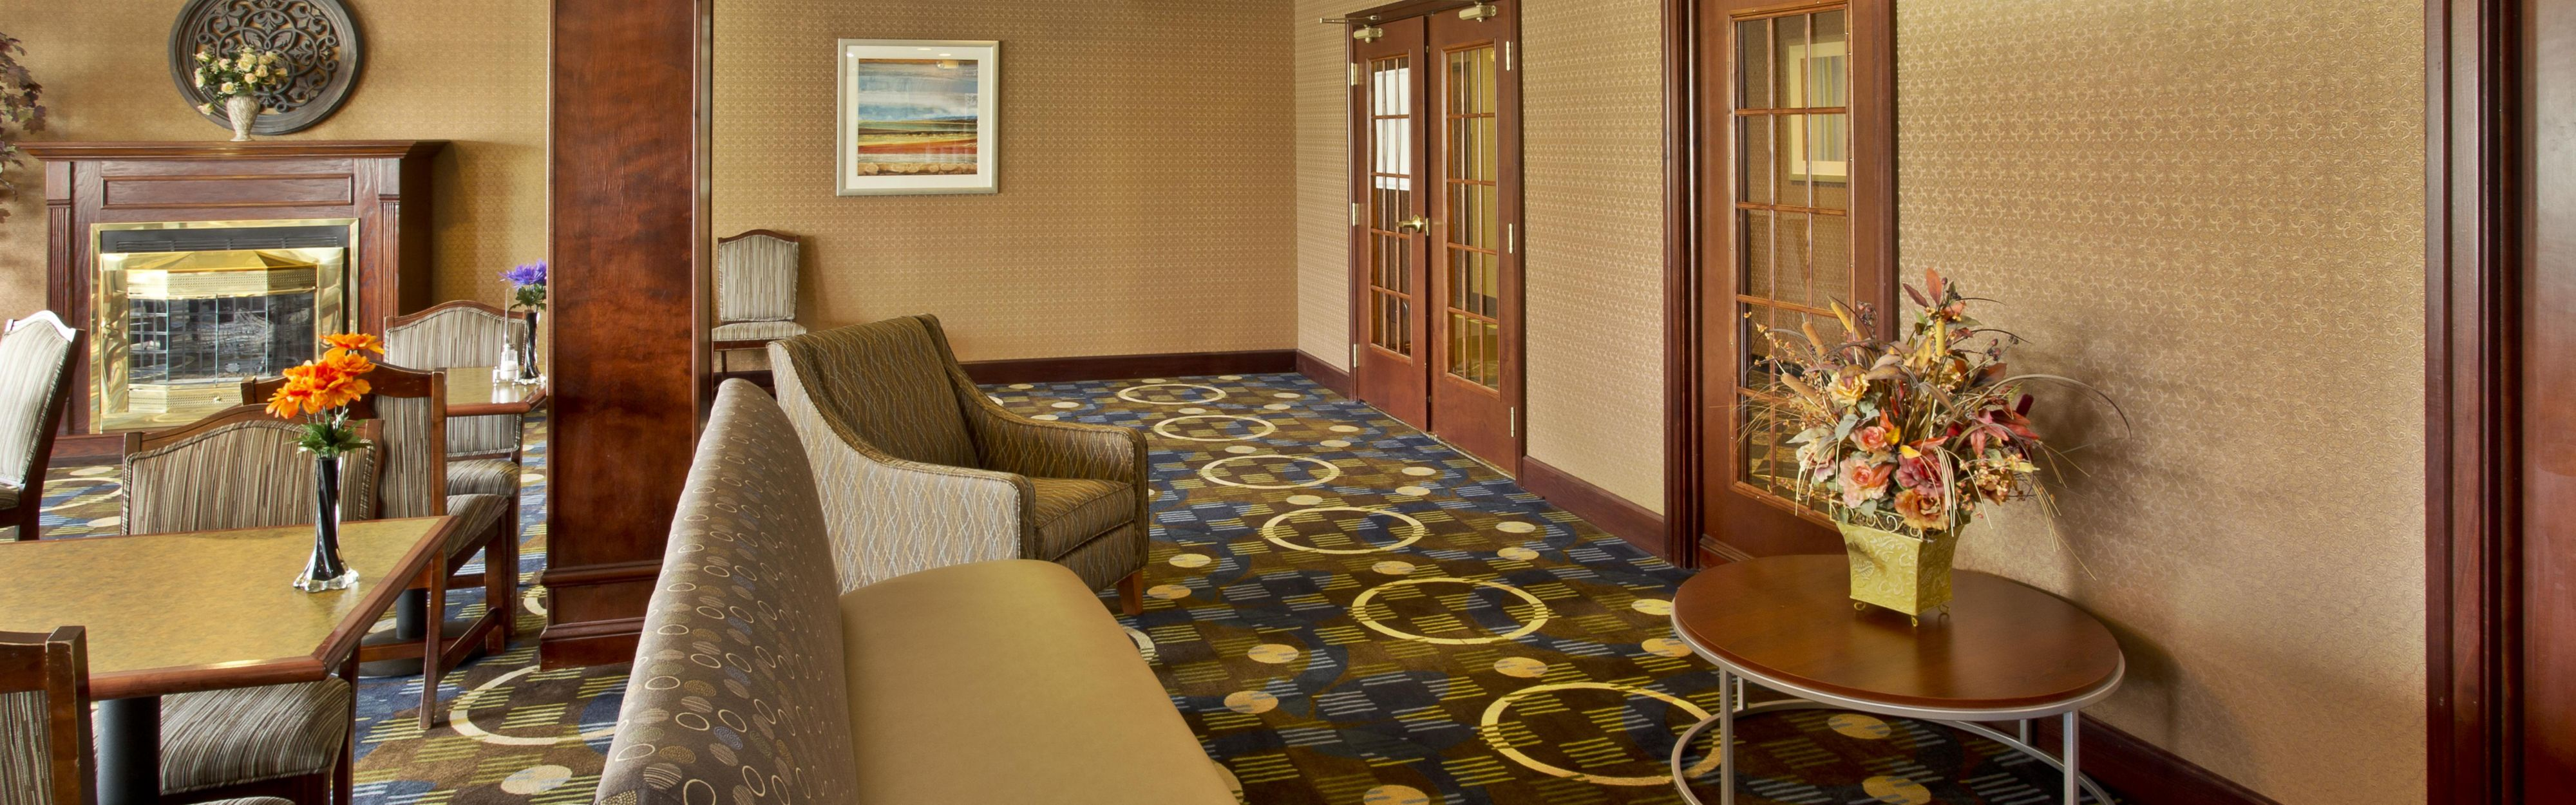 Holiday Inn Express & Suites Woodhaven image 3